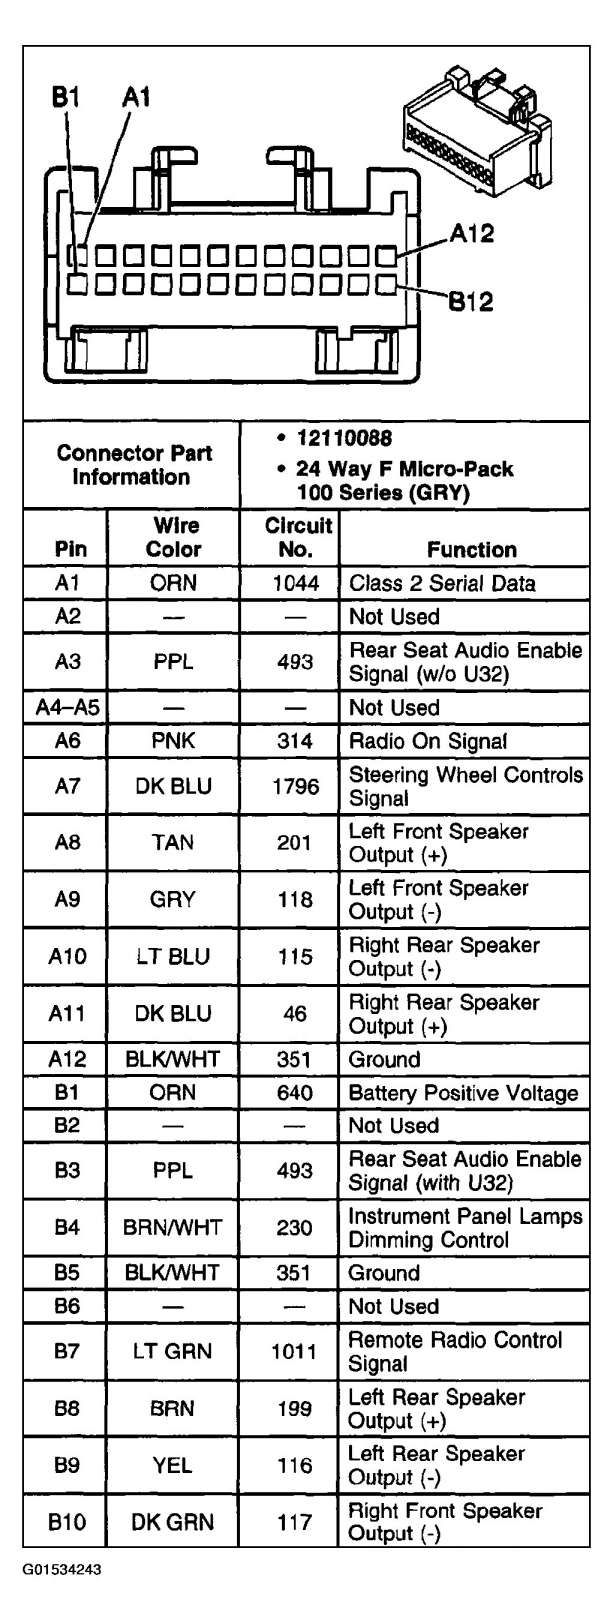 2003 chevy silverado radio wiring diagram - wiring diagrams auto  bell-preference-a - bell-preference-a.moskitofree.it  moskitofree.it